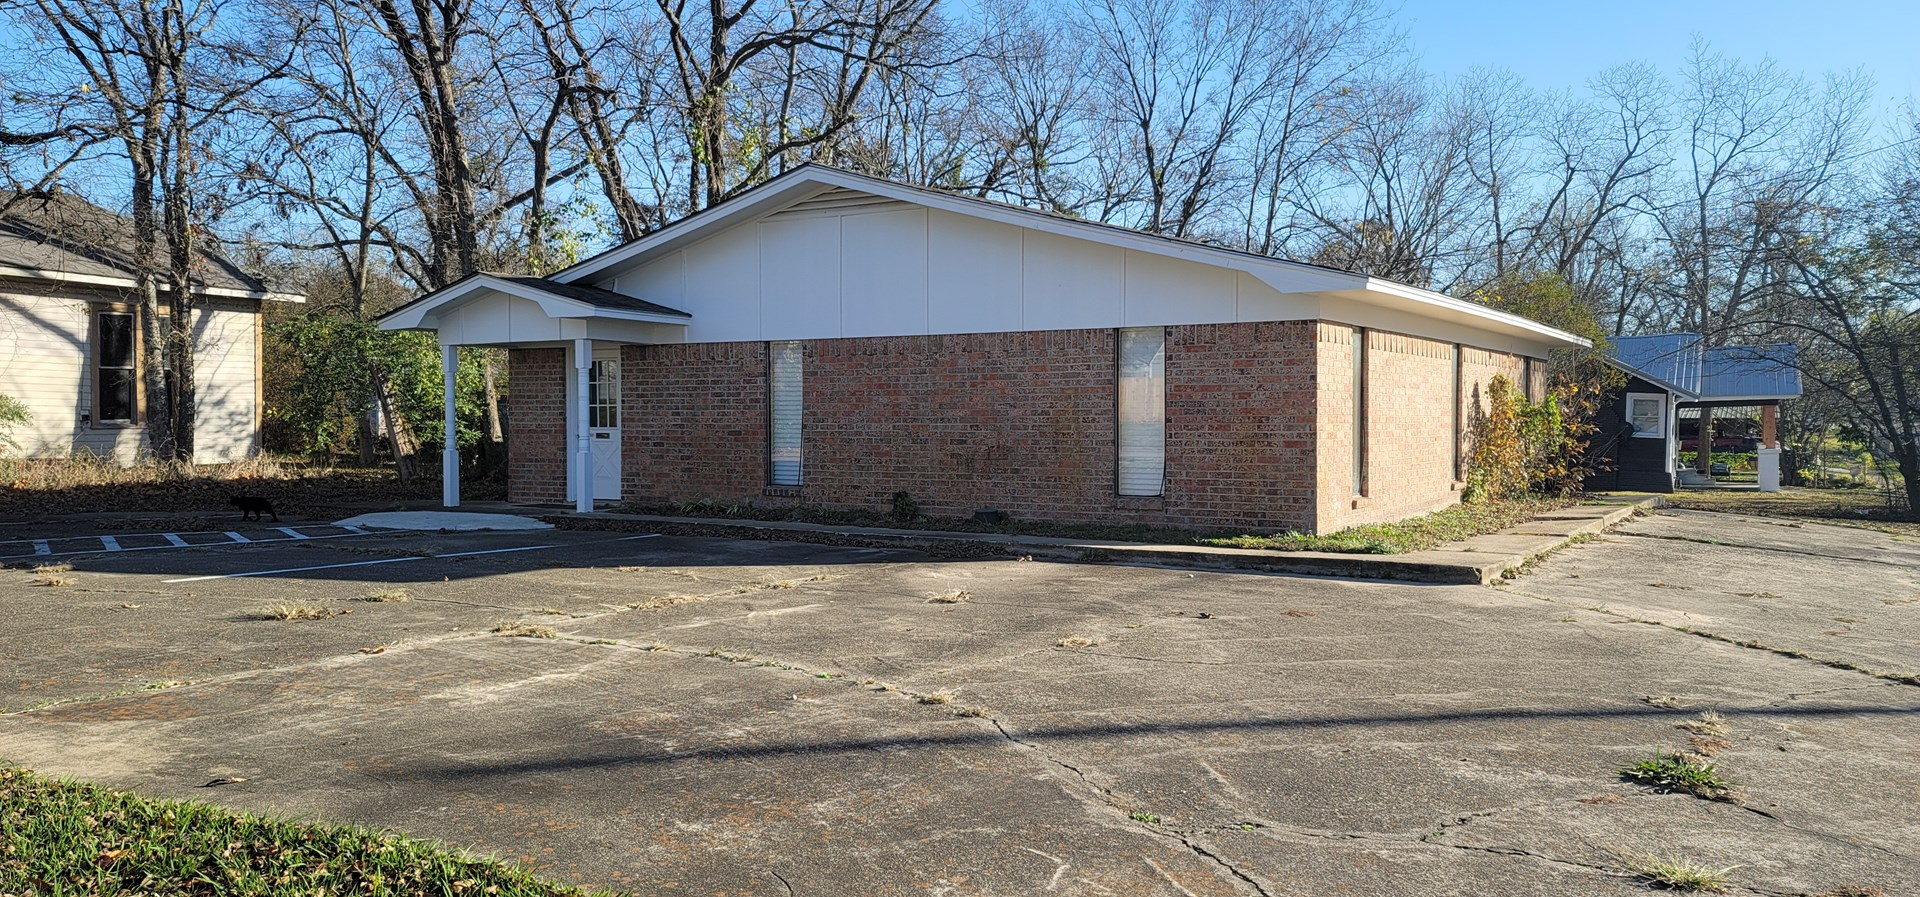 Commercial Building For Sale Clarksville Texas